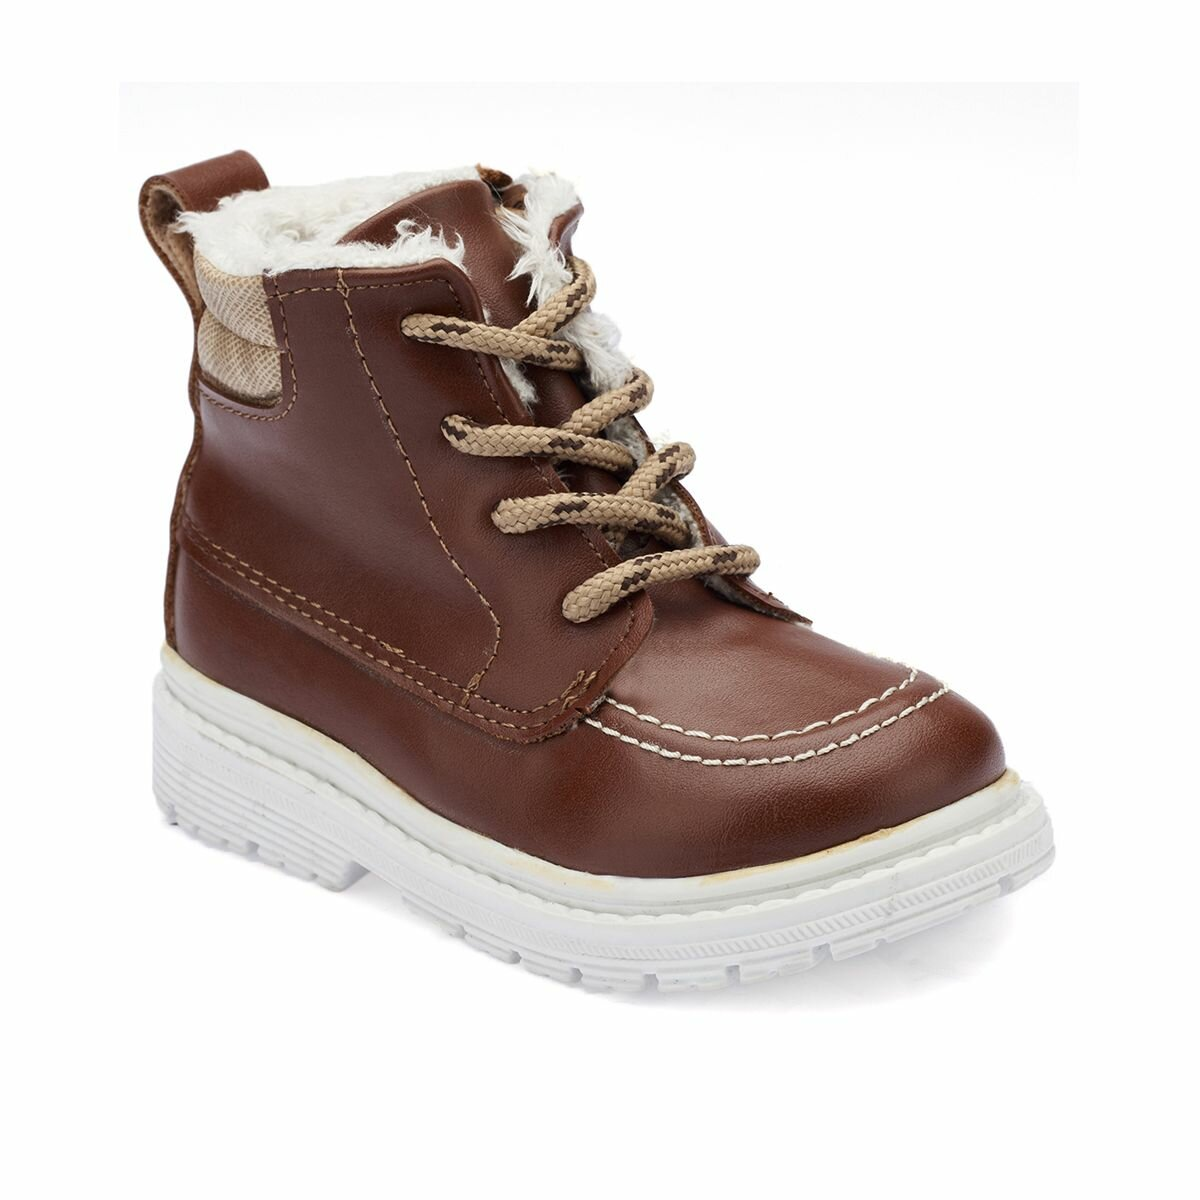 FLO 82.509575.B Brown Male Child Boots Polaris